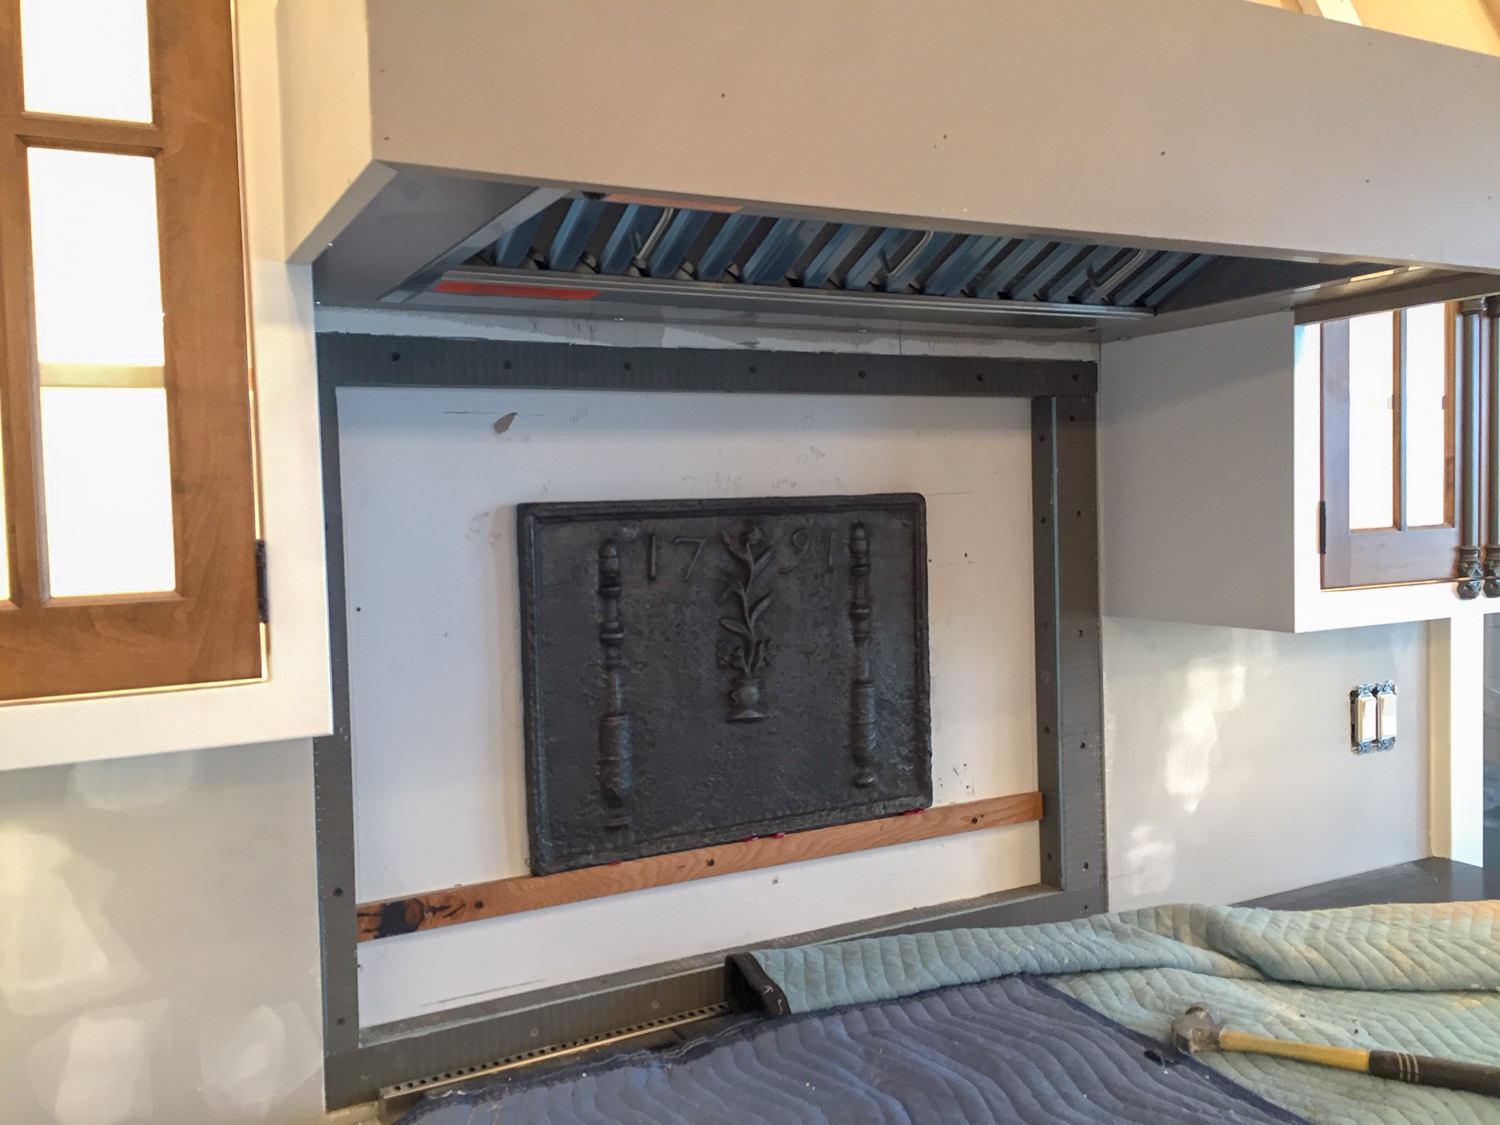 Fireback with construction adhesive for backsplash in a kitchen